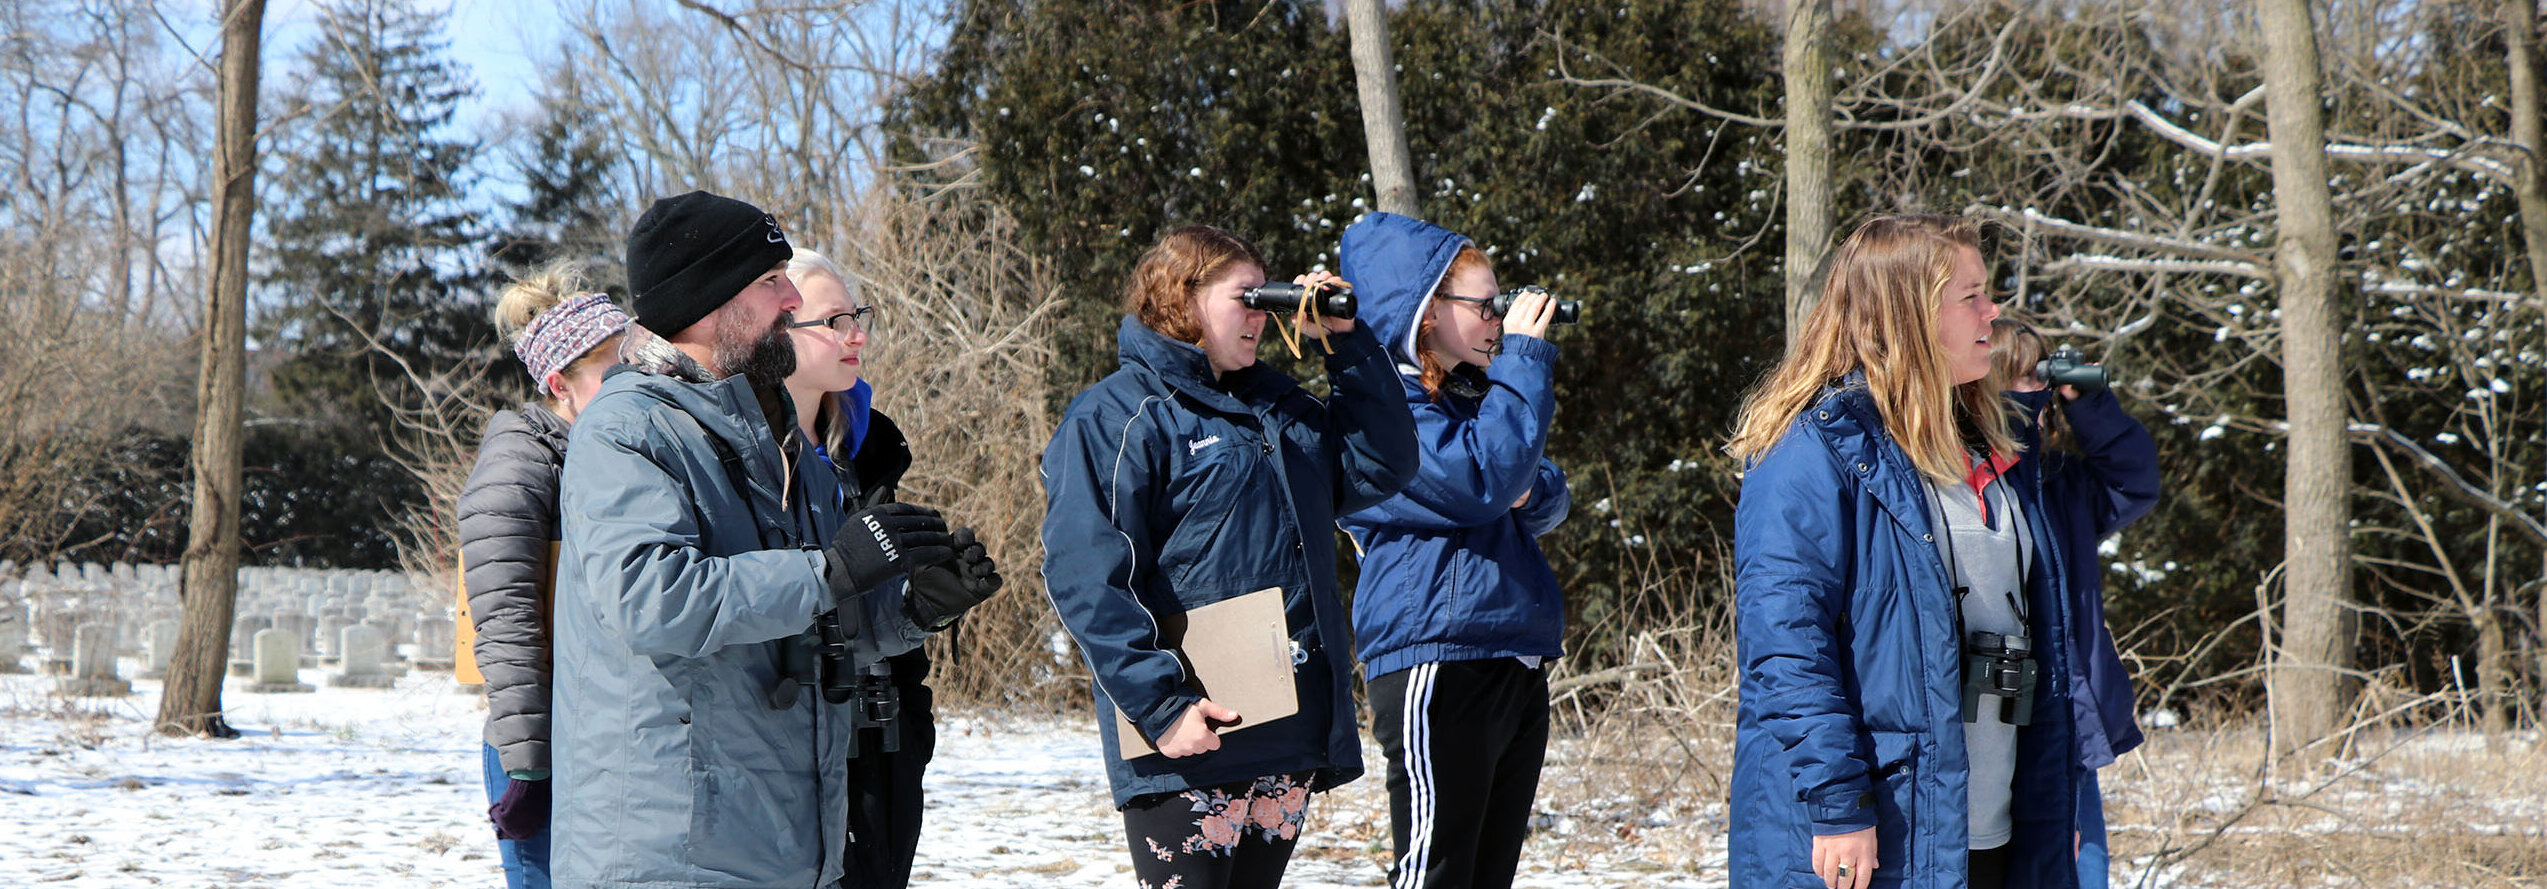 Students and instructor standing outside looking through binoculars